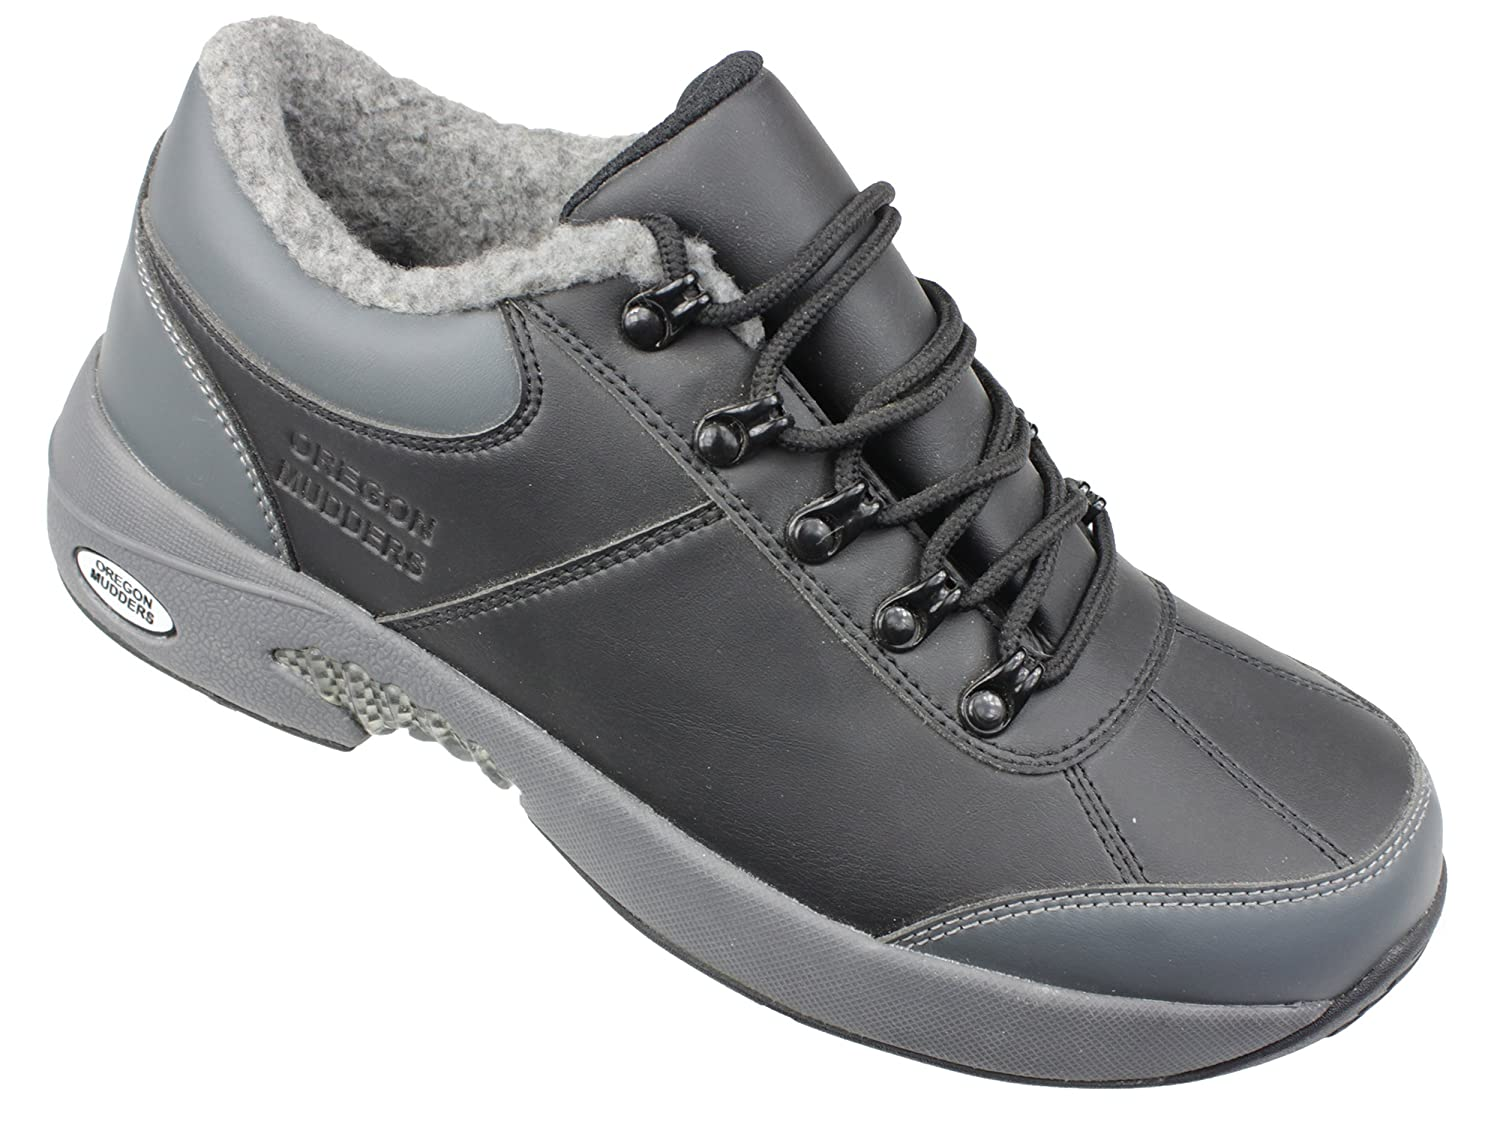 Oregon Mudders Mens CM400S Waterproof Oxford Golf Shoe with Spike Sole B0714536QZ 11 D(M) US